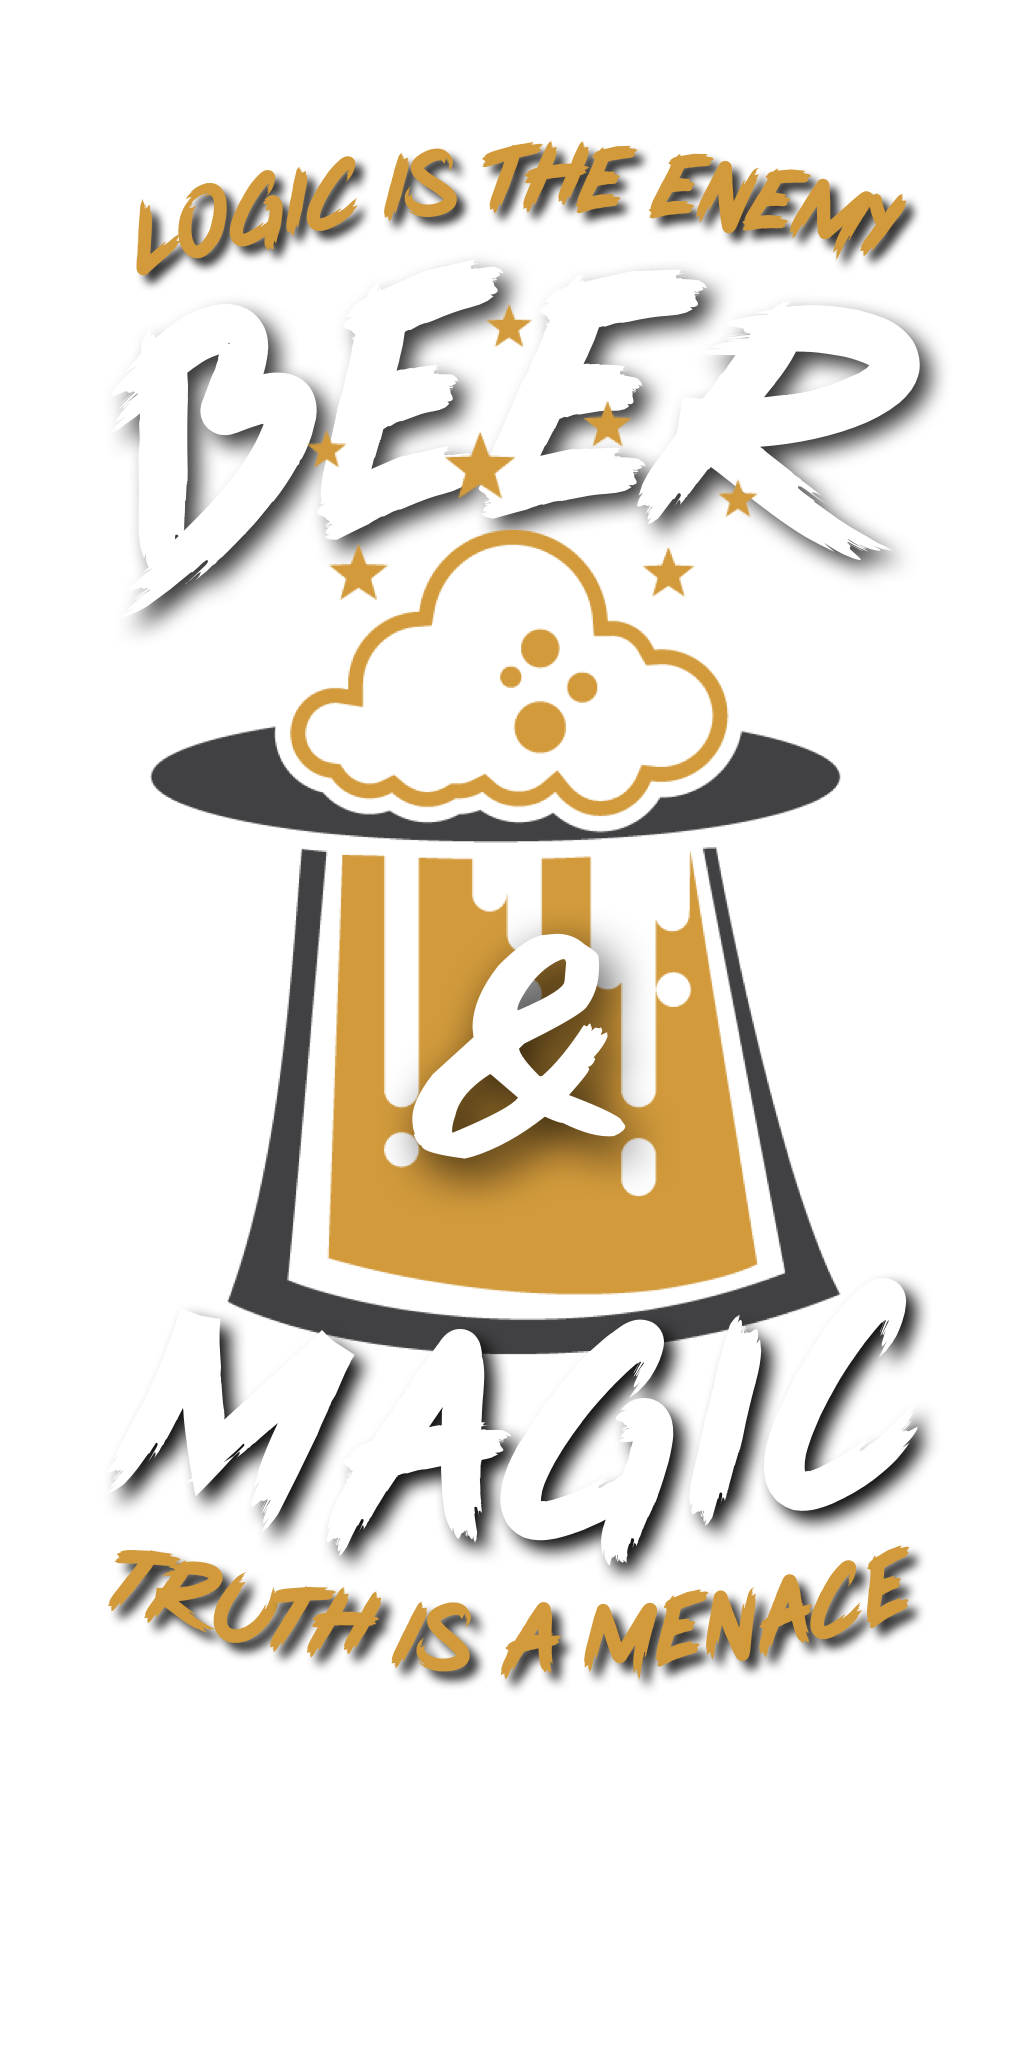 We offer a special experience like no one else. Beer and Magic is a group of award winning Magicians who entertain all over the world. We've been performing at breweries like Golden Road, Angel City, Mt. Lowe, Noble Ale Works, All-American Brew Works and Absolution Brewery to name a few. Close up magic is performed right in front of your eyes and in many cases in your own hands. Magic has never been more popular and we will entertain you in ways you have never experienced and will never forget.You TUBE VIDEO: https://youtu.be/_deN43urHqQ -